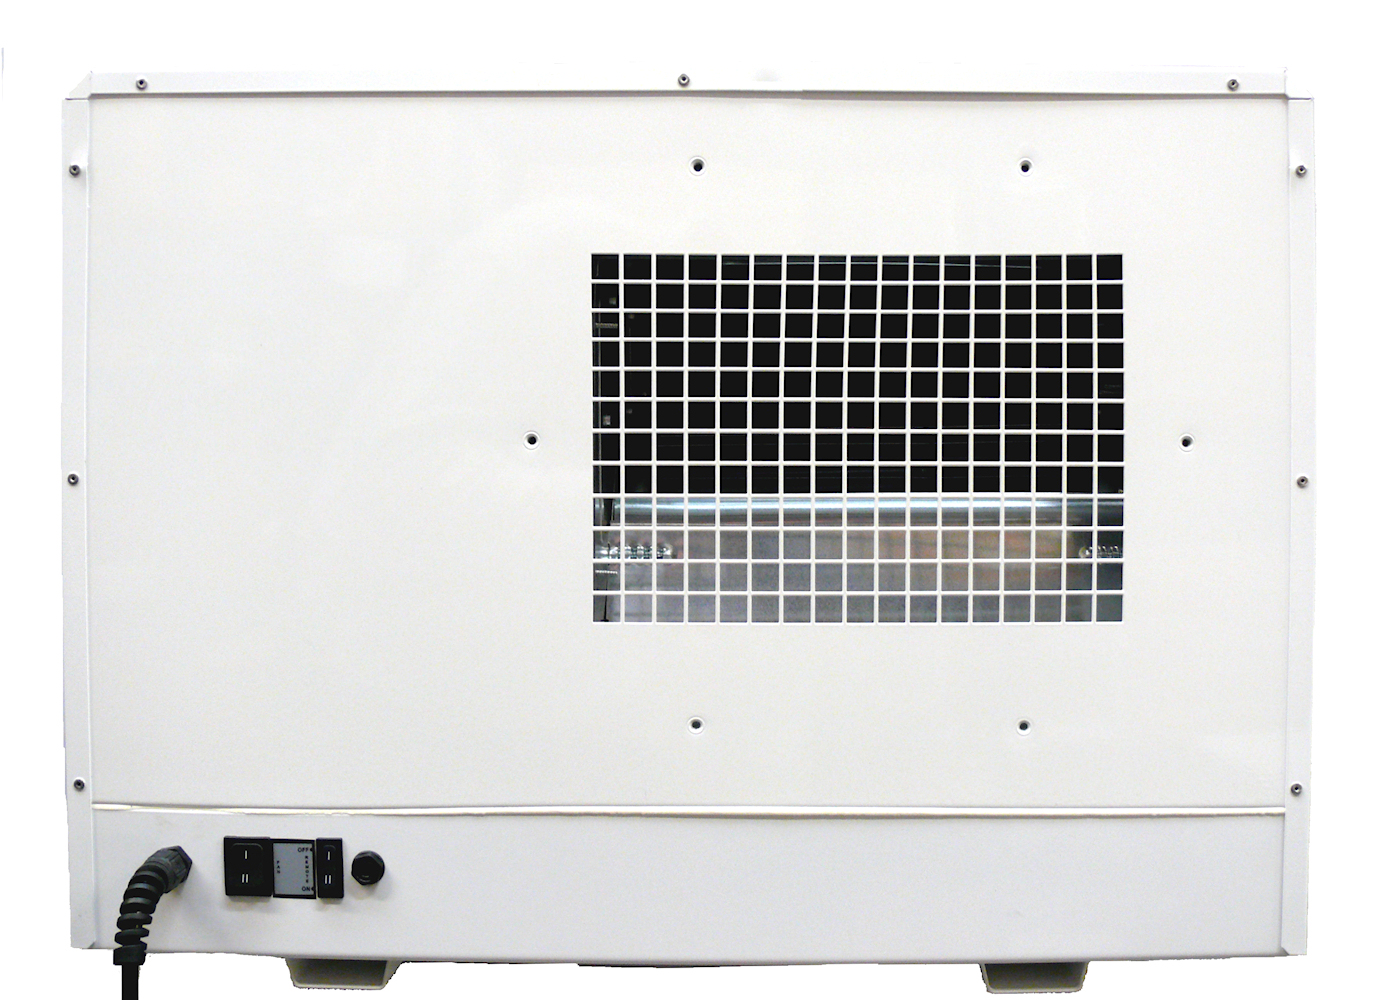 dsr front dehumidifiers by Ecor Pro